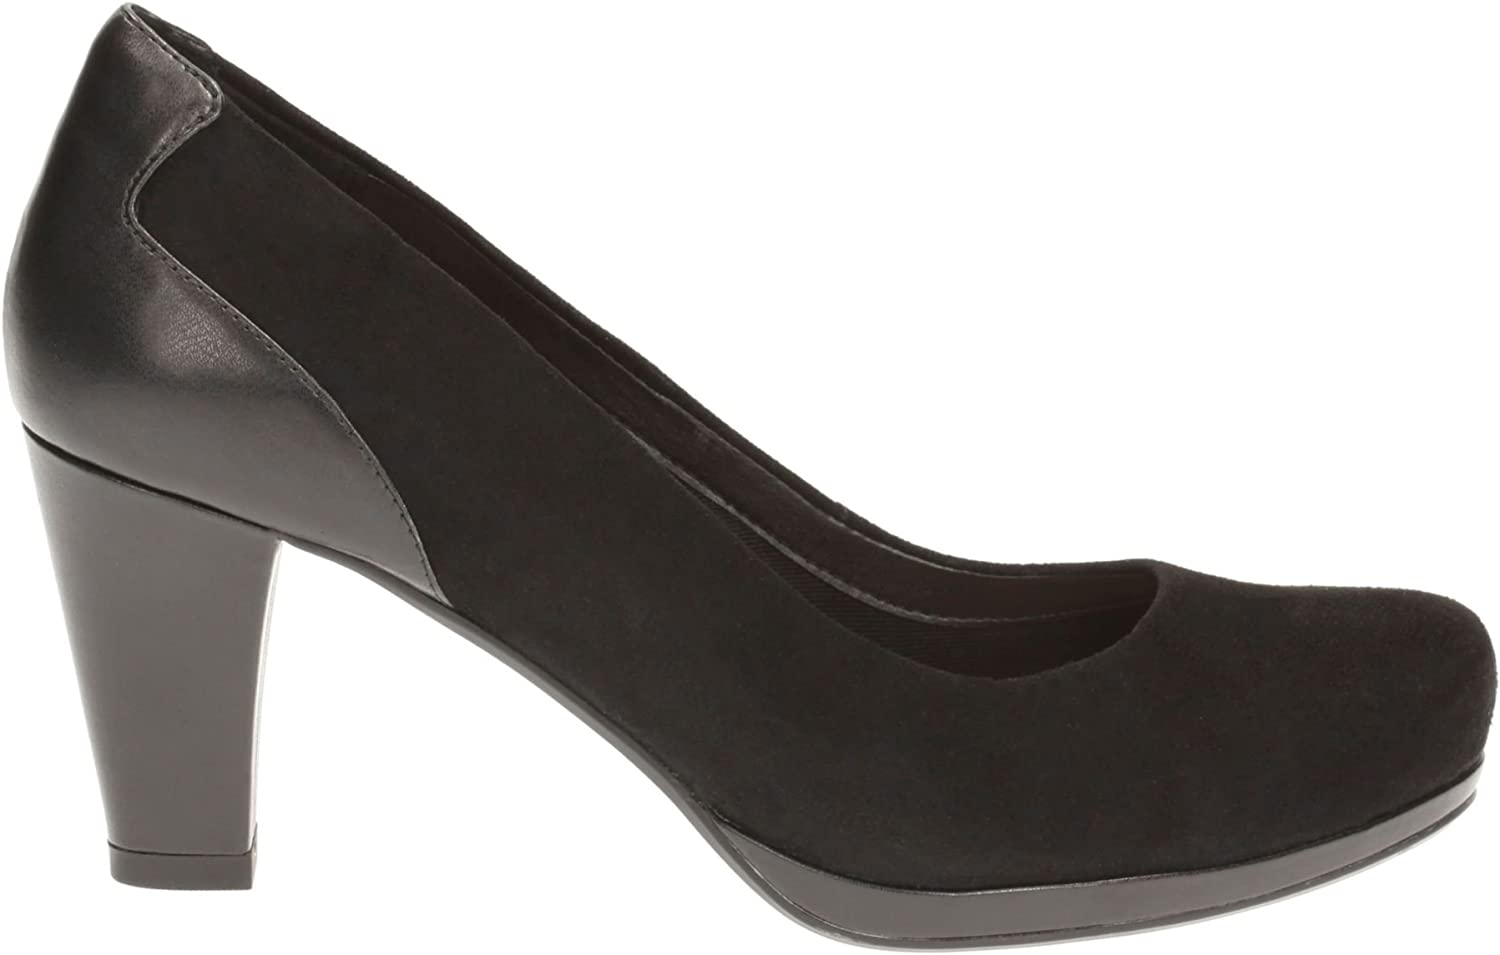 Clarks Damen Chorus Chic Pumps